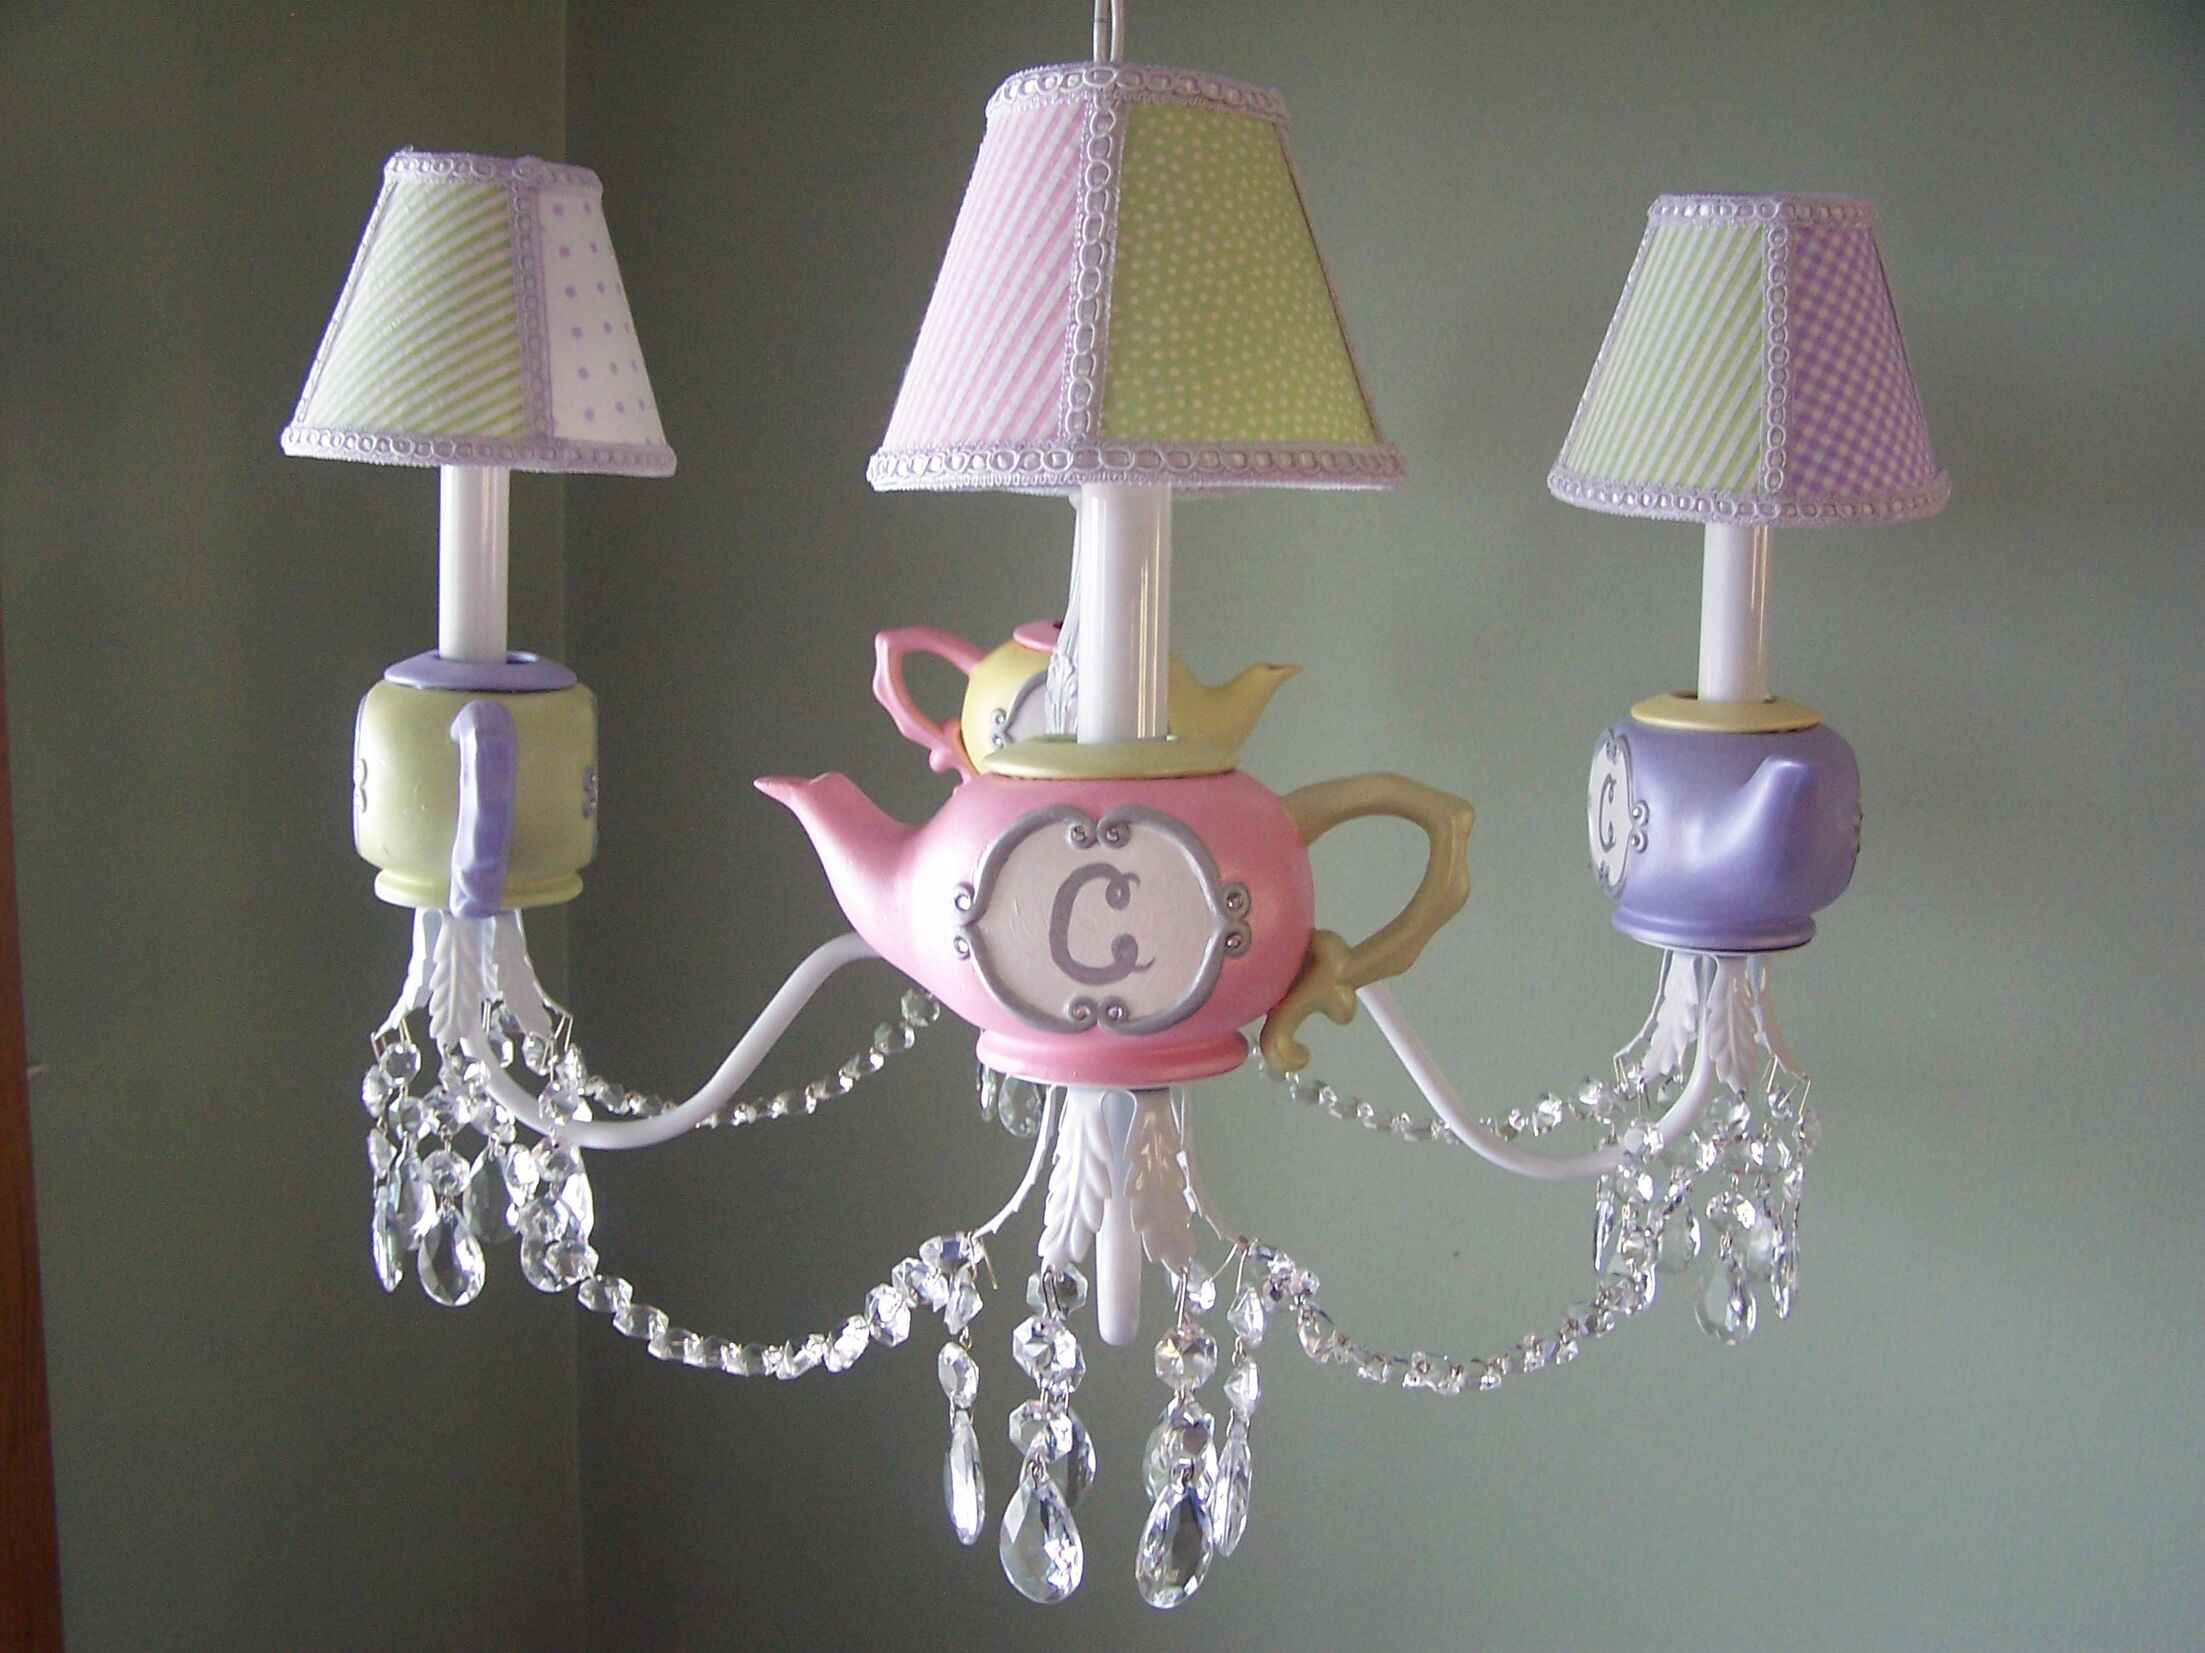 Millie's Teaparty 4-Light Shaded Chandelier Shade: Touch Of Elegance